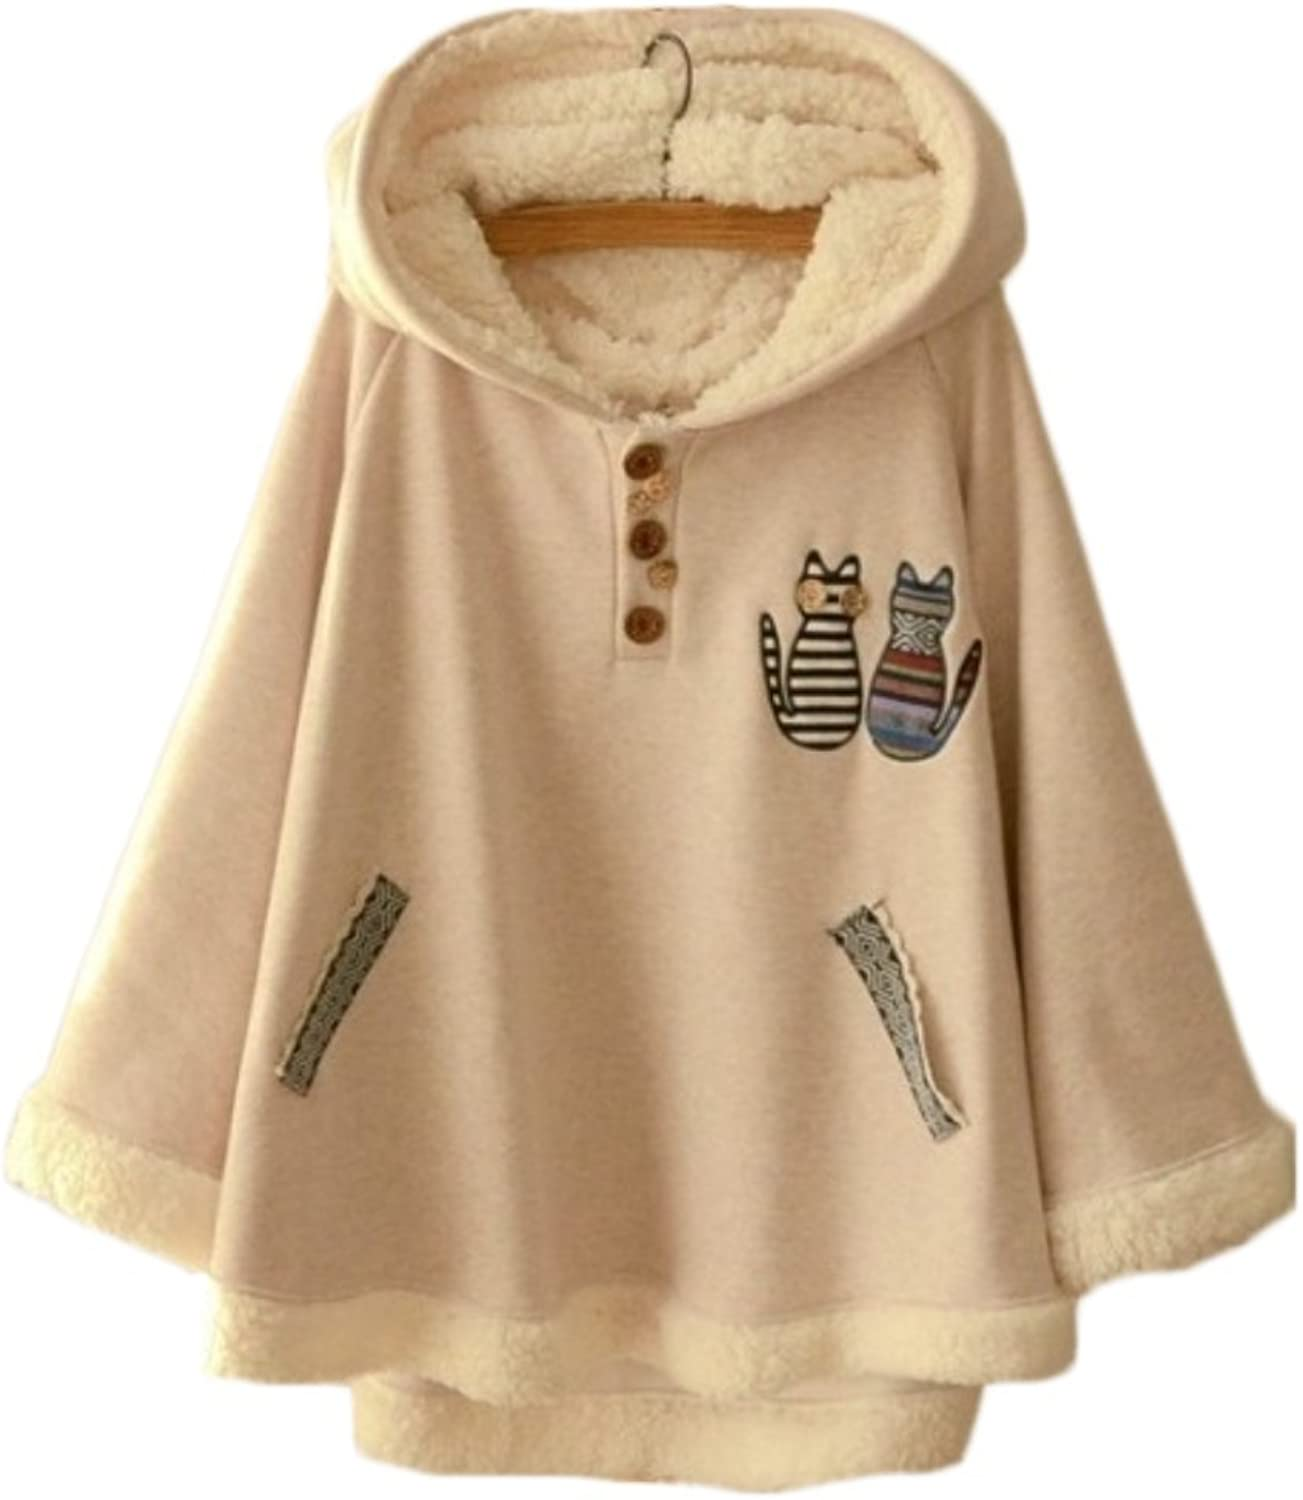 Aza Boutique Cute Style Animal Print Double Cat Embroidery Fleece Hooded Cape